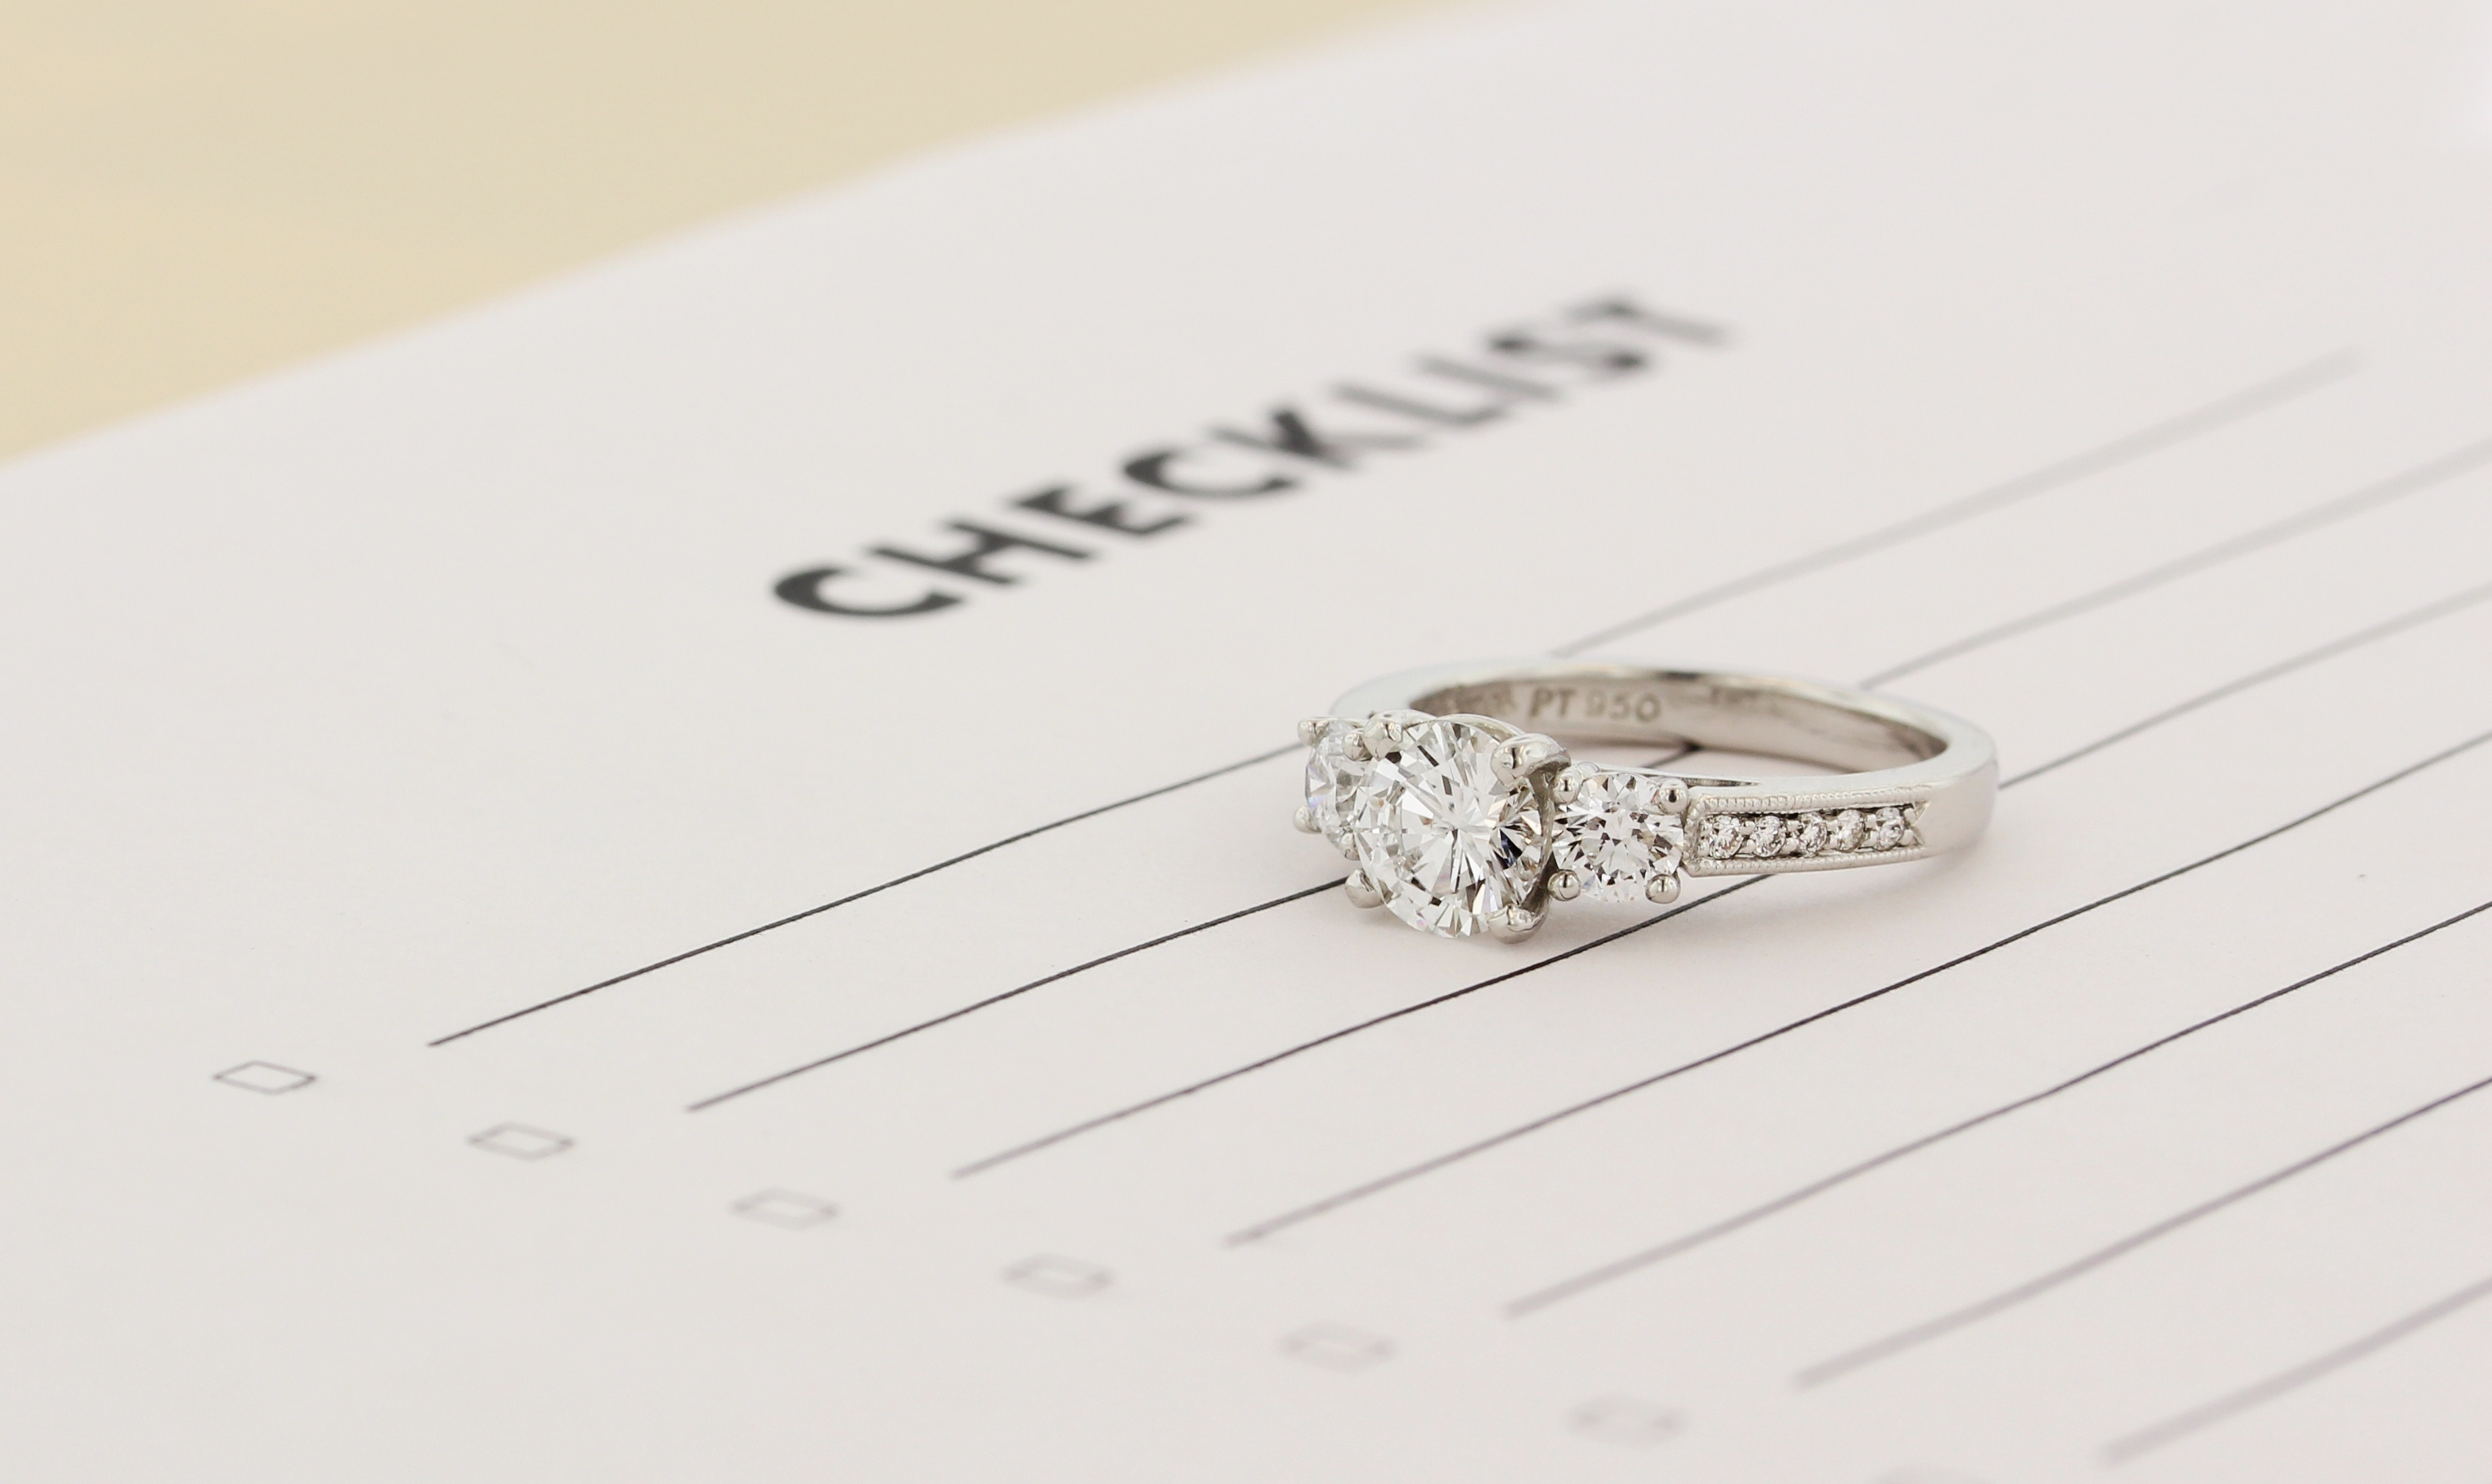 editIM[Quick Tip] Don't Buy An Engagement Ring Without Asking This